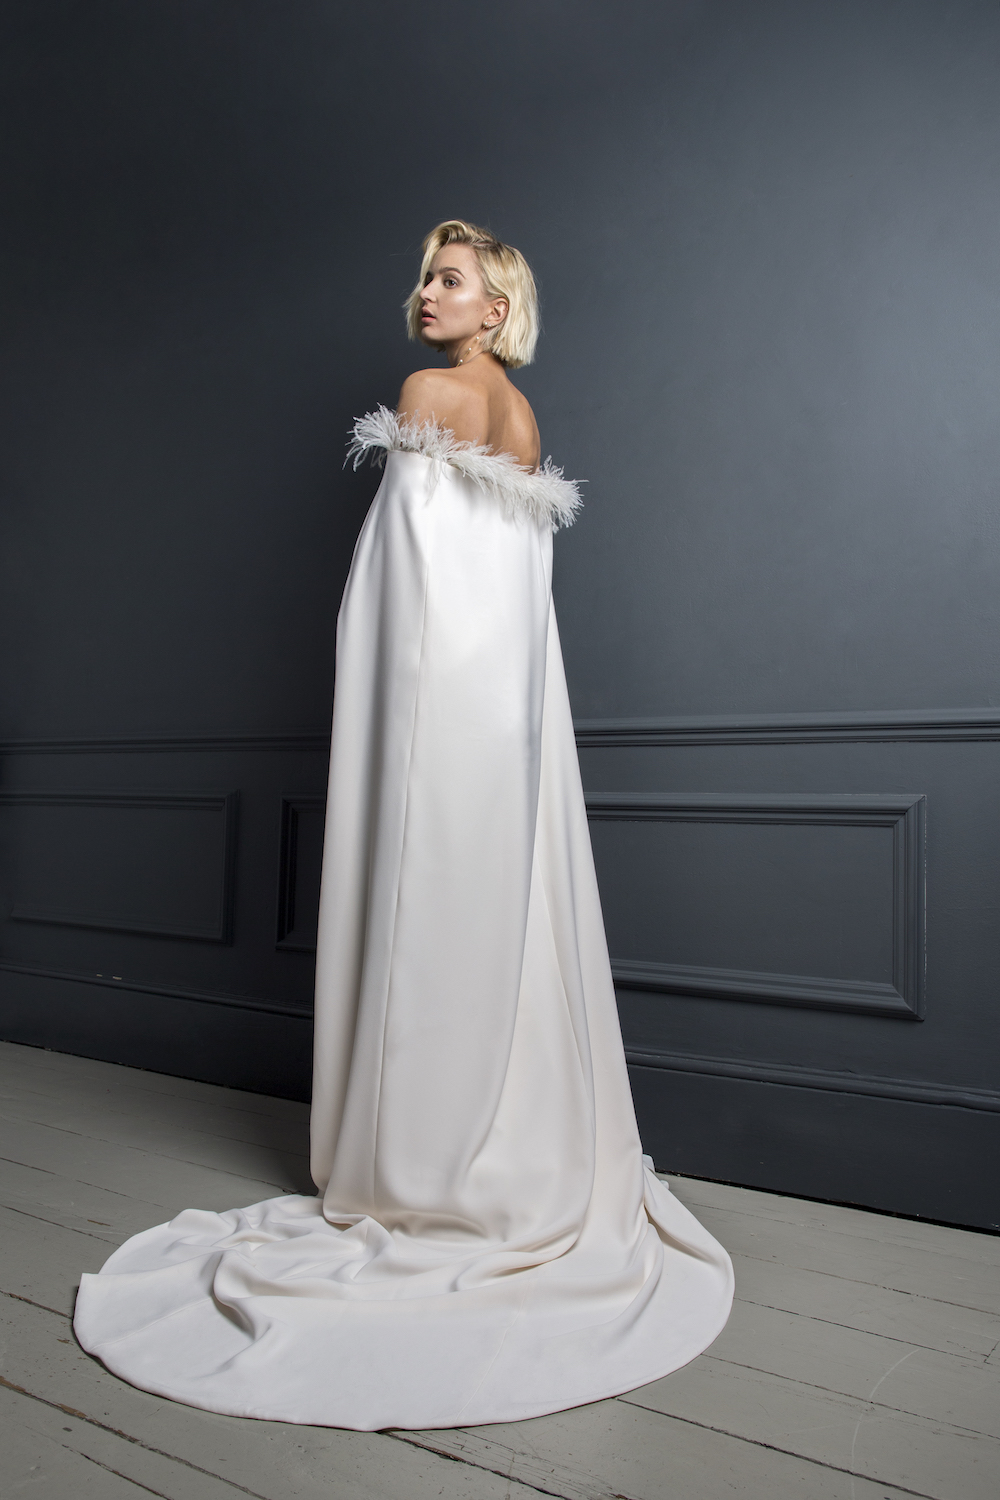 JOSEPH CAPE | WEDDING DRESS BY HALFPENNY LONDON